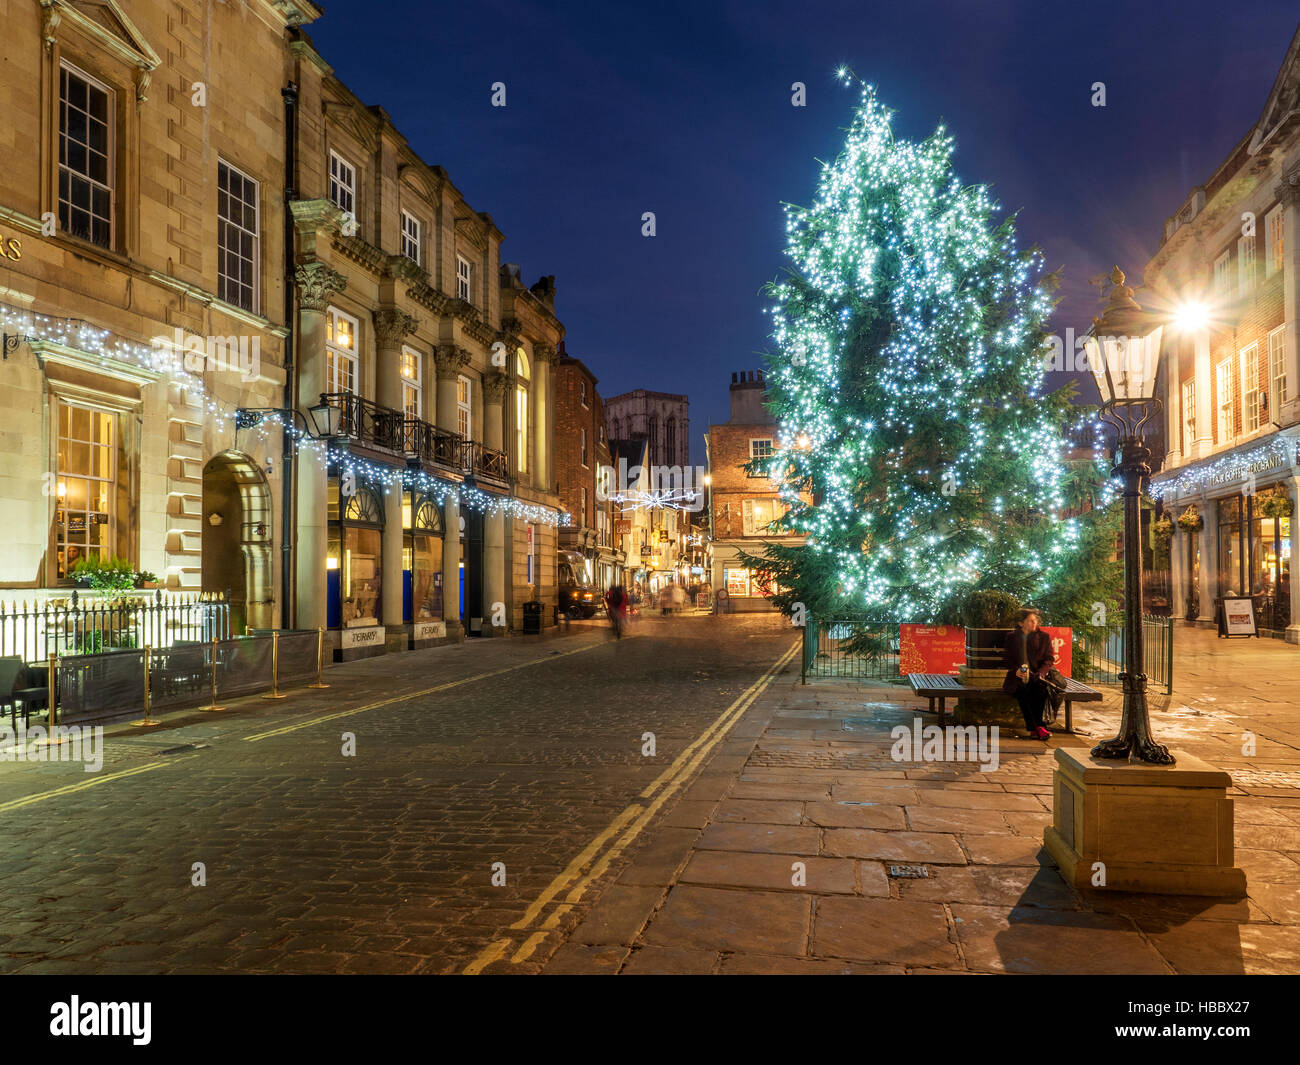 St Helens Square at Christmas at Dusk in York Yorkshire England - Stock Image